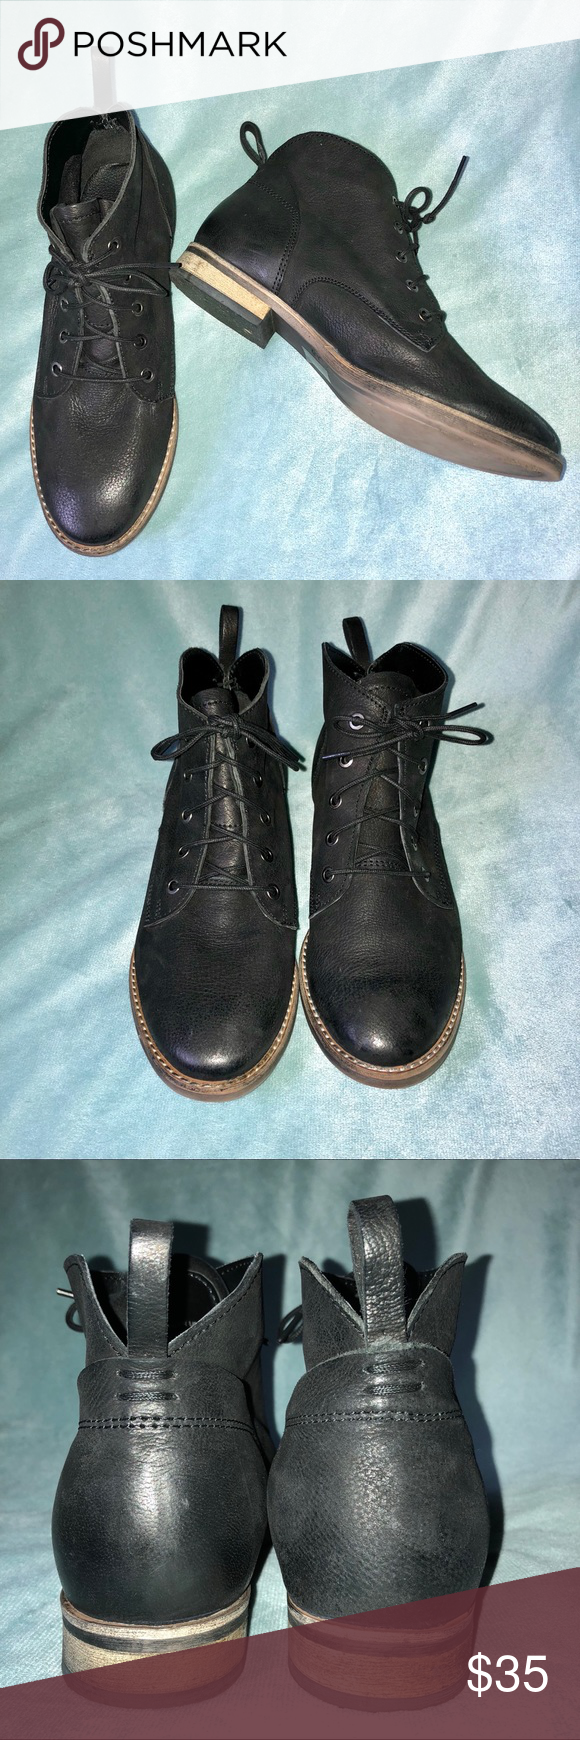 4fac9b22b0 Diba Eli Black Leather Lace-Up Ankle Bootie Boot Diba Eli Black Leather  Lace-Up Ankle Bootie Boot Women s Size 7.5 M Gently worn with normal wear  and tear.